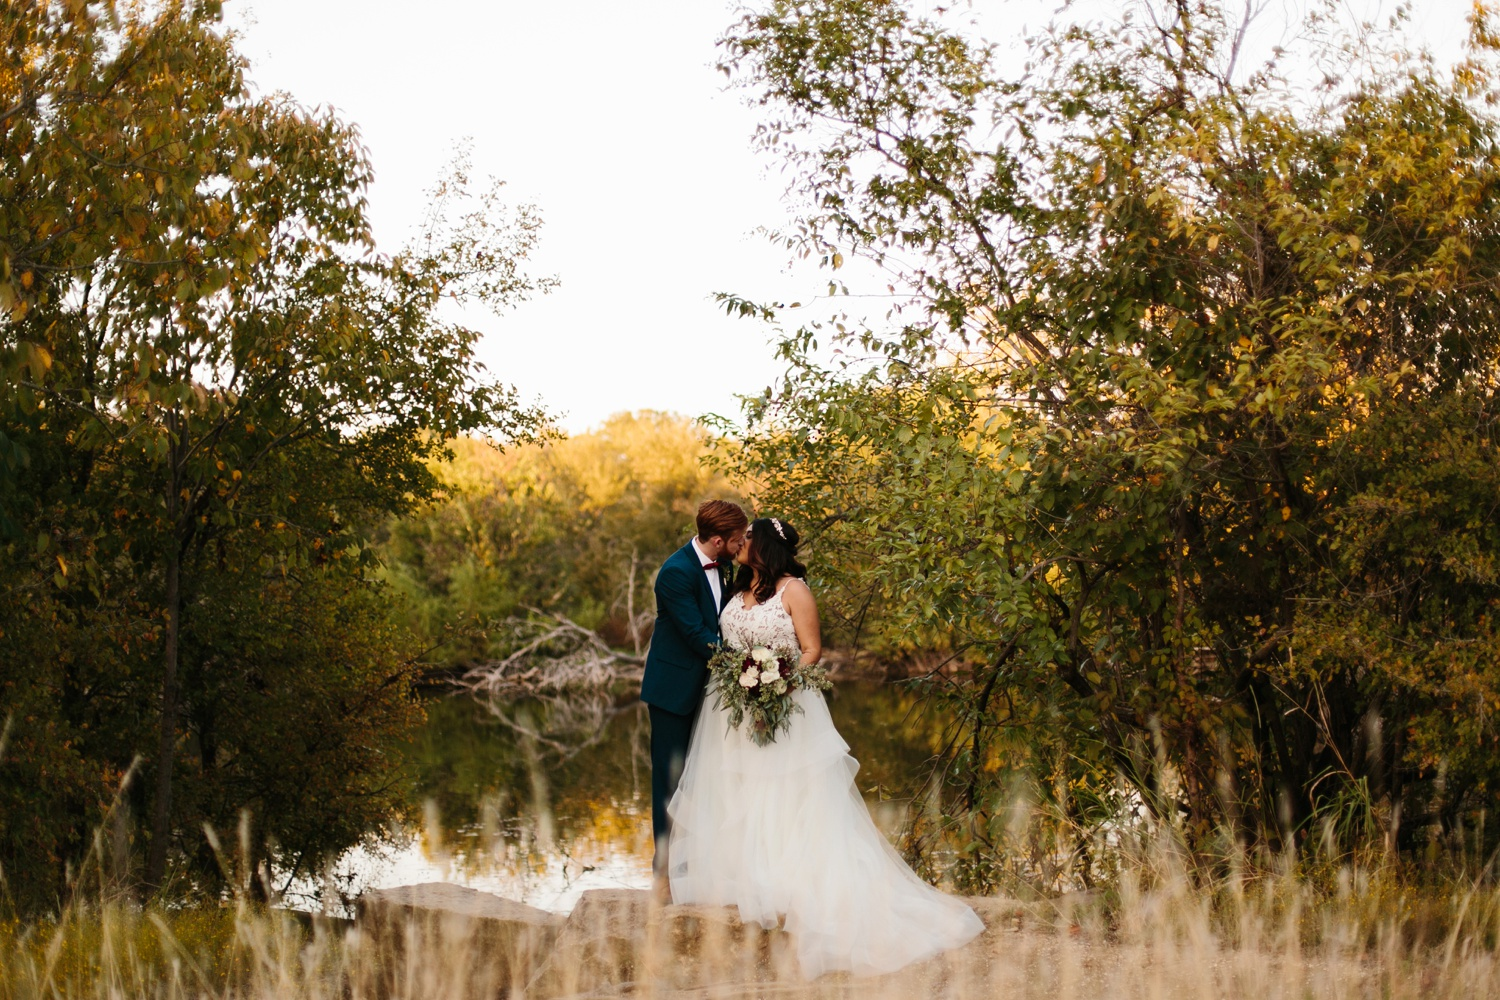 Grant + Lysette | a vibrant, deep burgundy and navy, and mixed metals wedding at Hidden Pines Chapel by North Texas Wedding Photographer Rachel Meagan Photography 245